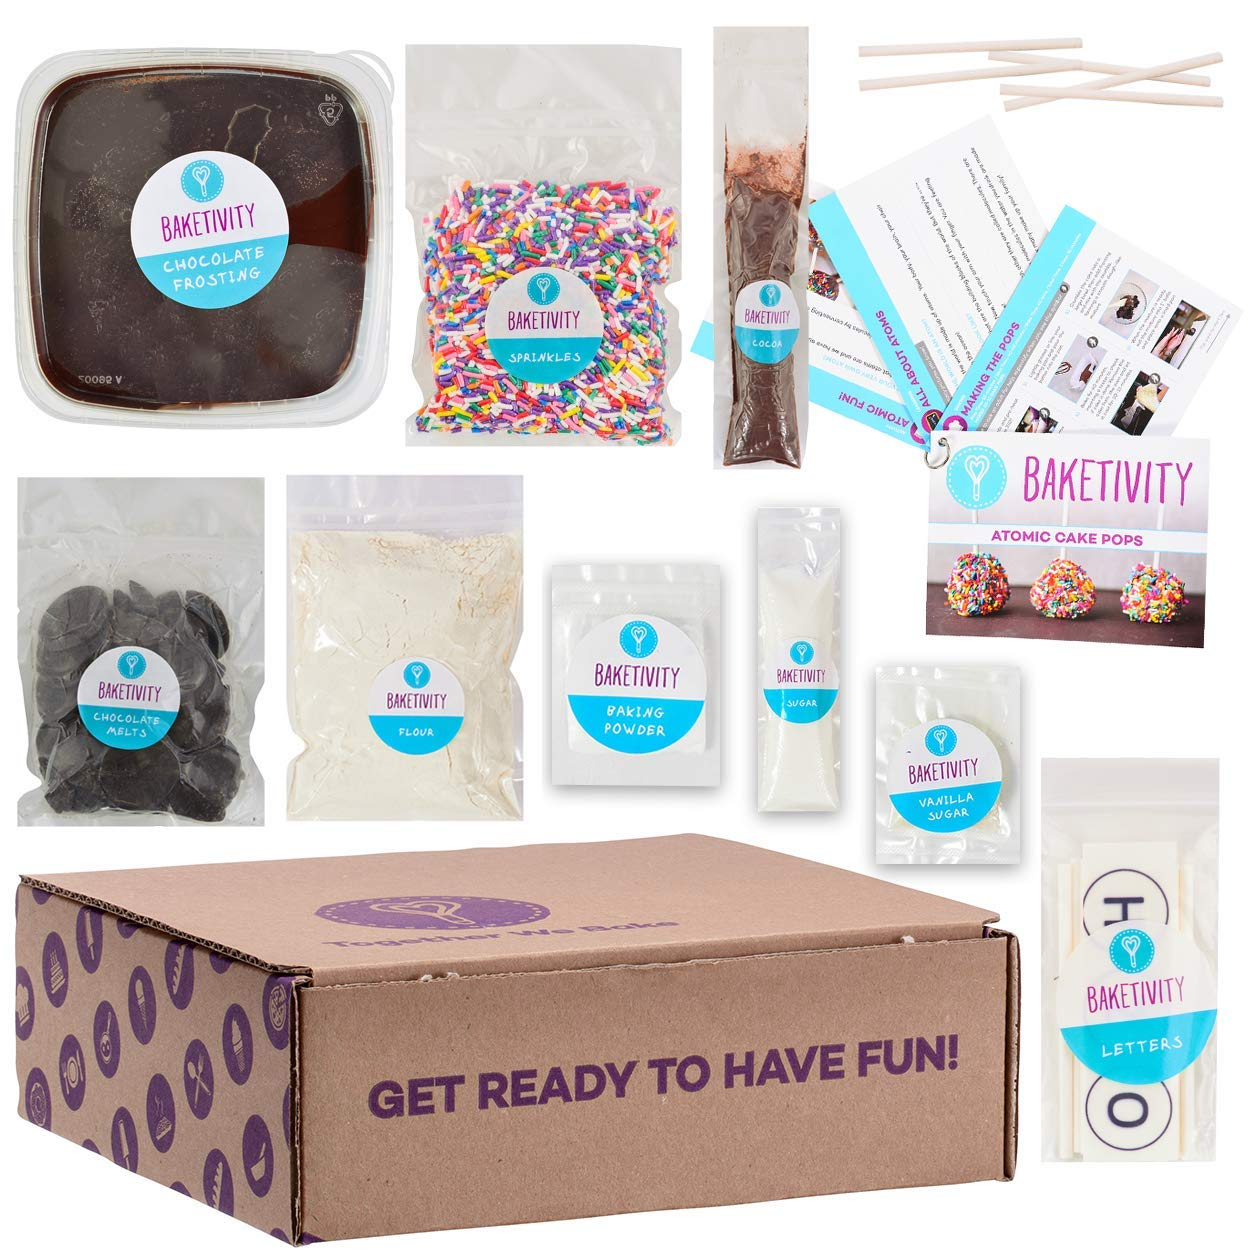 BAKETIVITY Kids Baking DIY Activity Kit - Bake Delicious Cake Pops With Pre-Measured Ingredients - Best Gift Idea For Boys And Girls Ages 6-12 by Baketivity